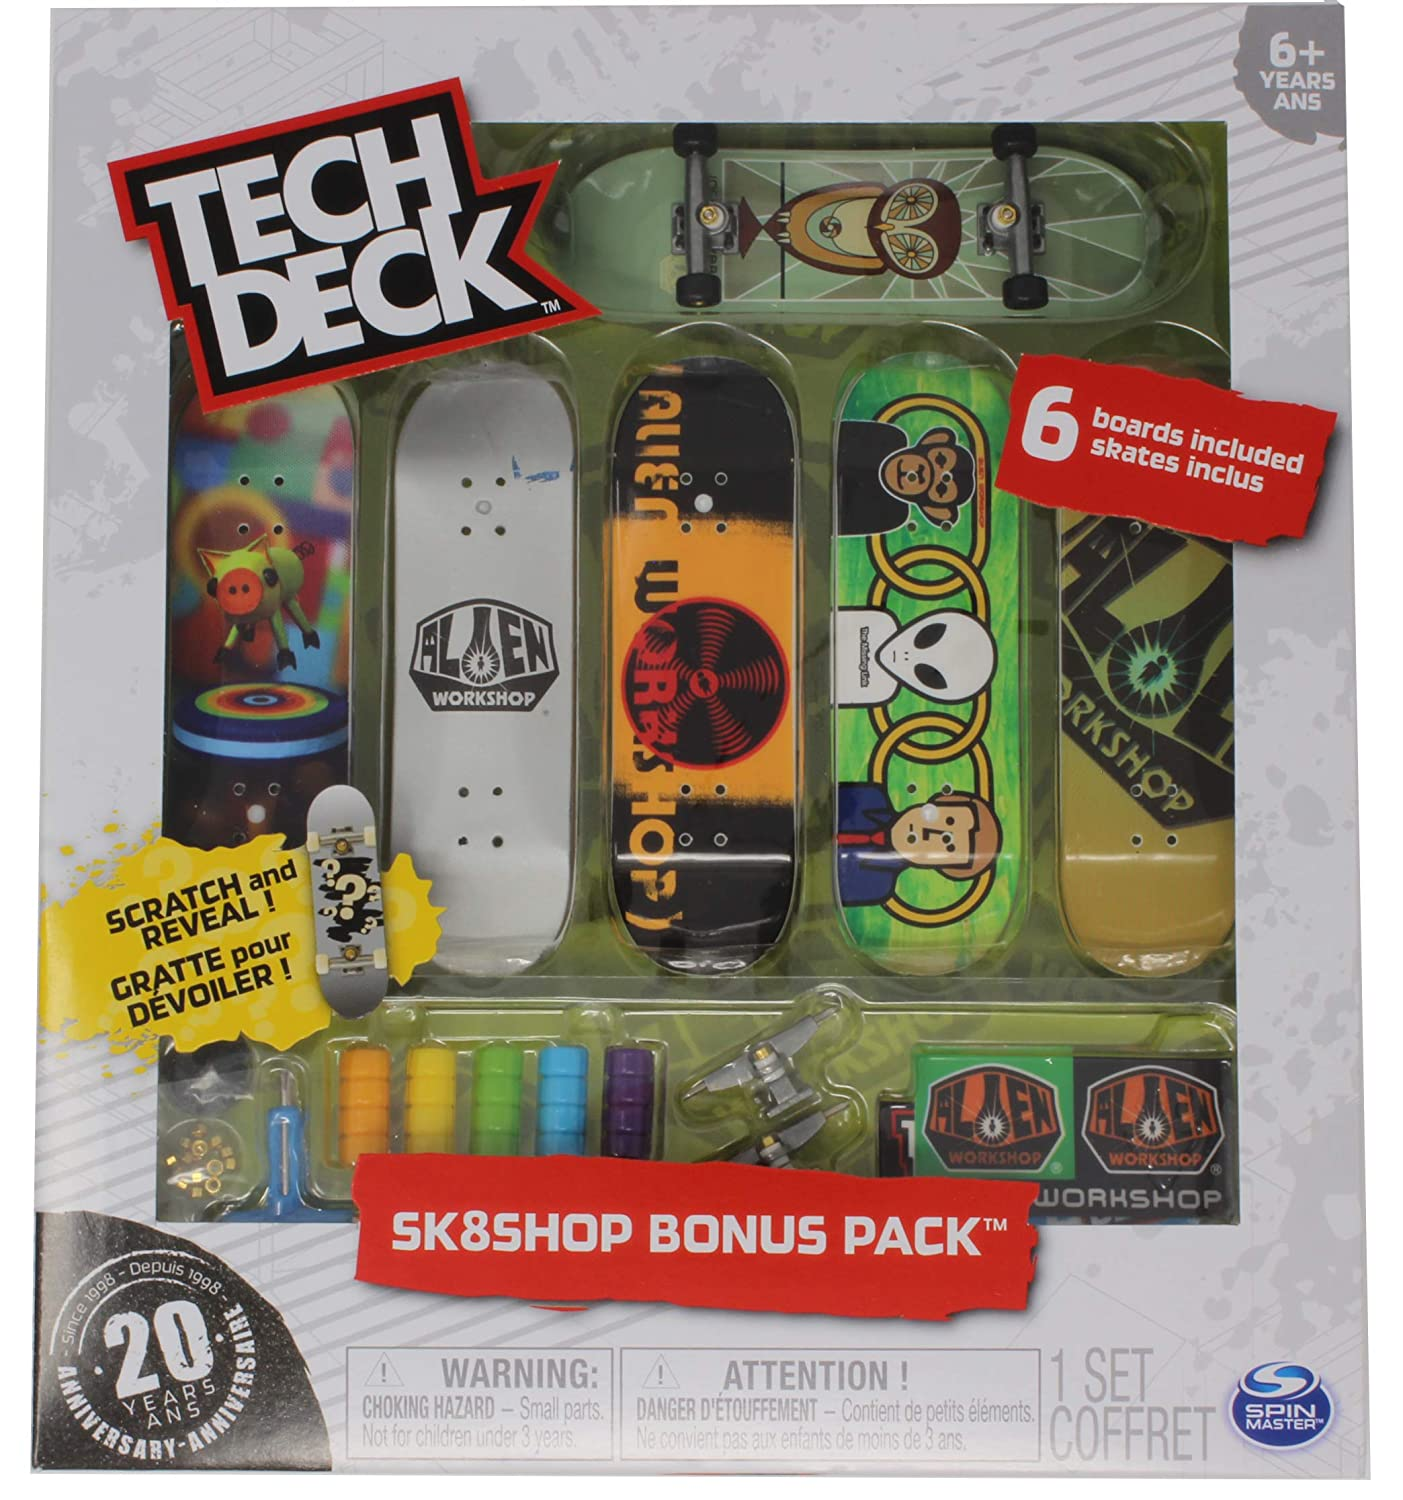 Tech Deck Alien Workshop Skateboards Sk8shop Bonus Pack with 6 Fingerboards 20th Anniversary